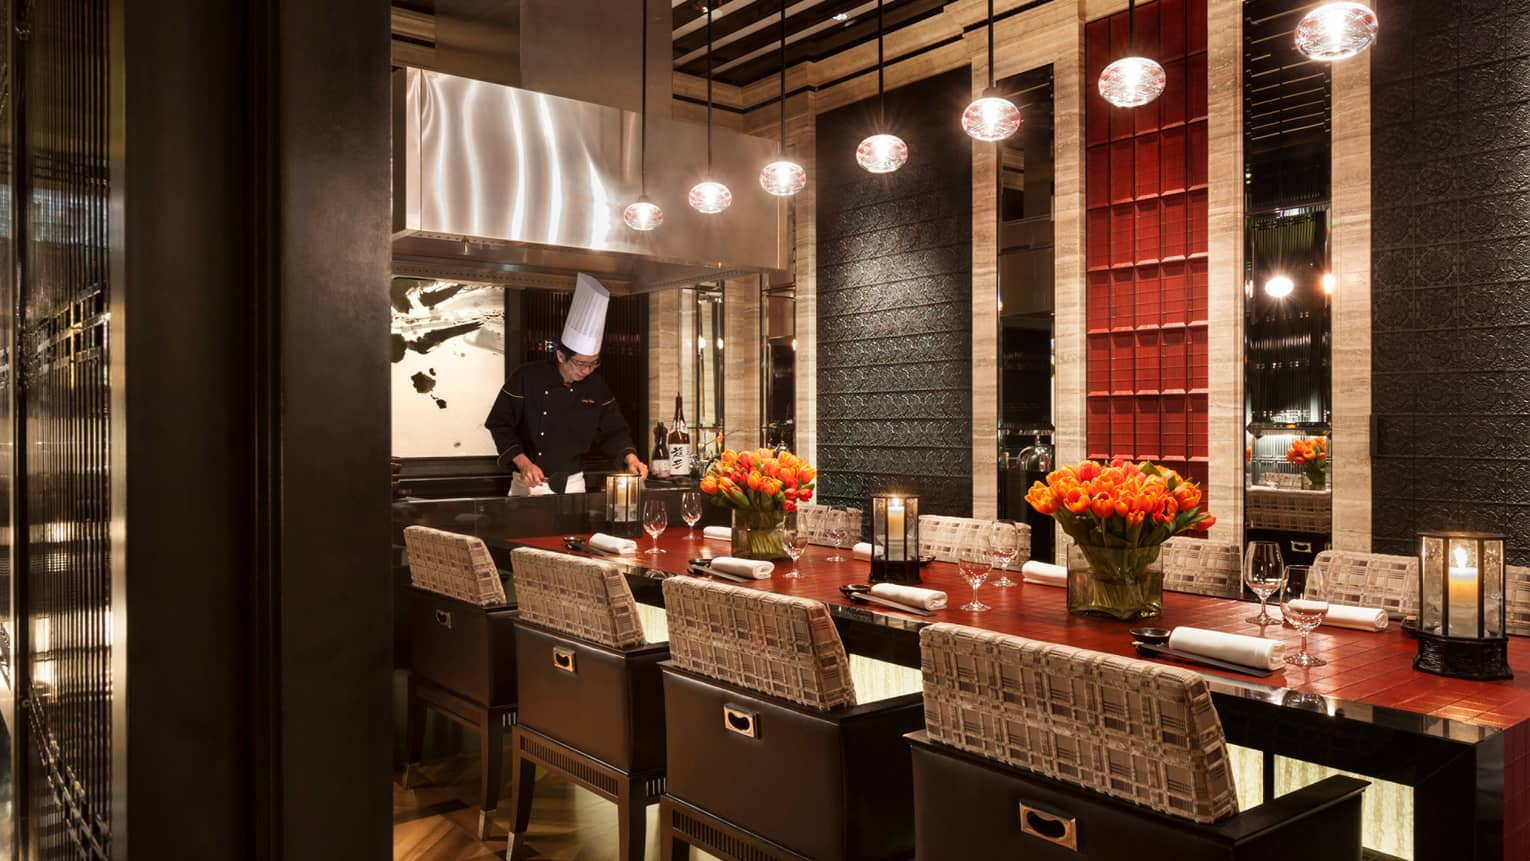 Chef works at head of Sintoho restaurant private dining table with candles in lanterns, orange tulips